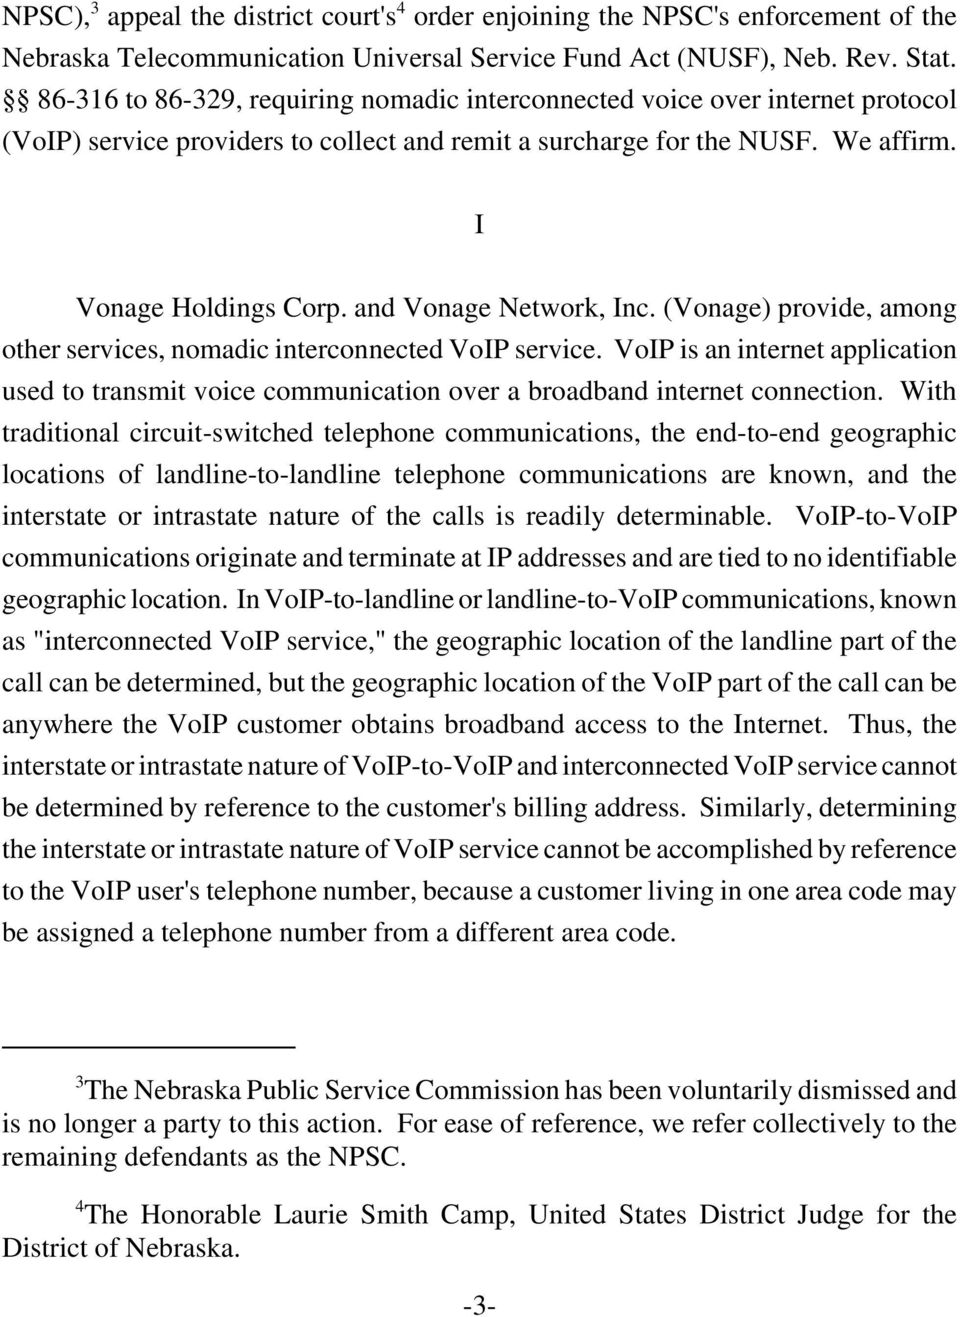 and Vonage Network, Inc. (Vonage) provide, among other services, nomadic interconnected VoIP service.